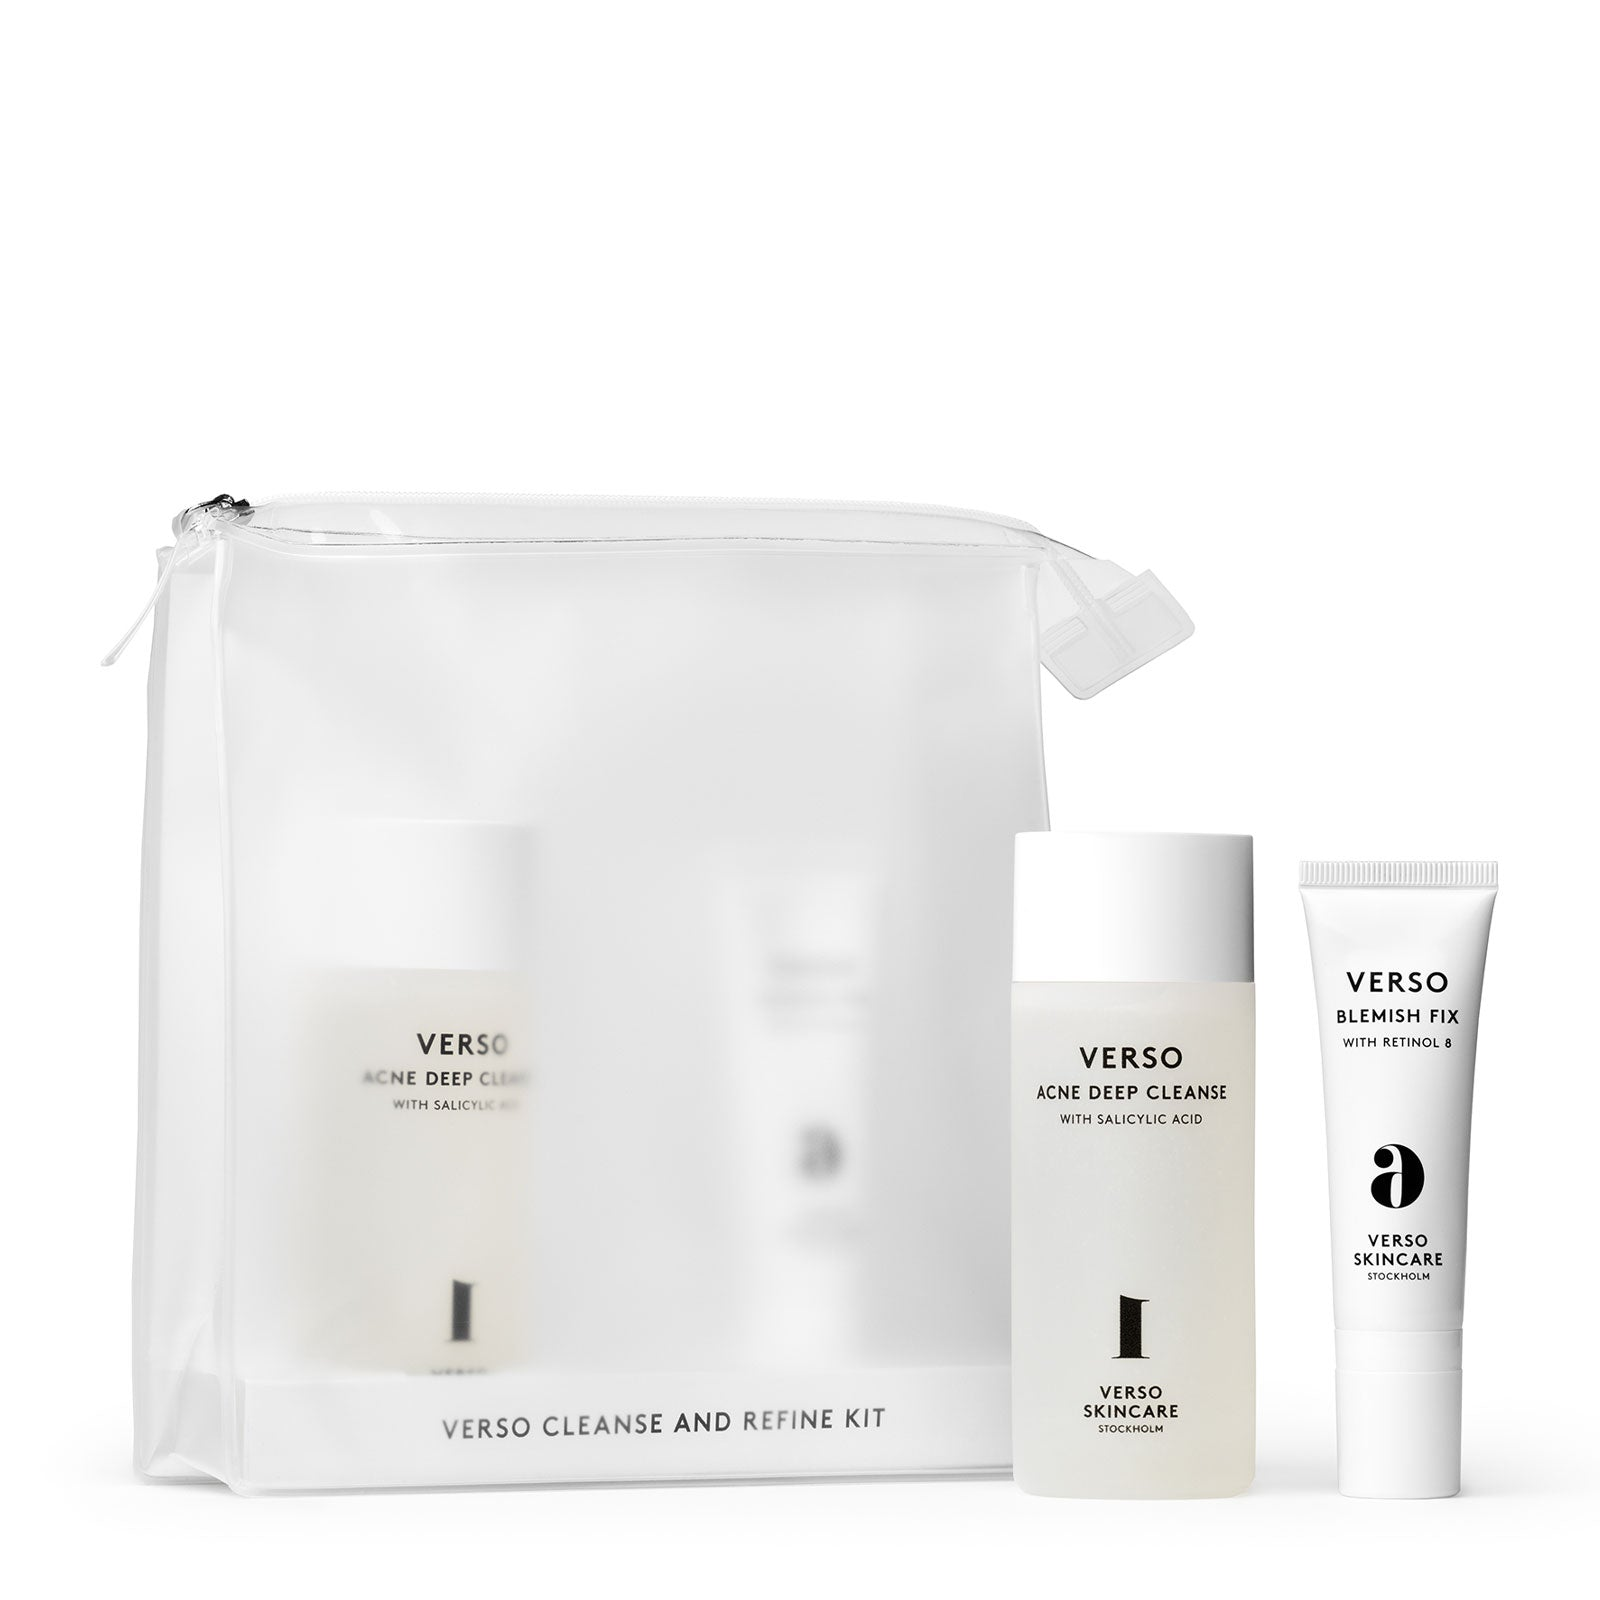 Verso Cleanse & Refine Kit